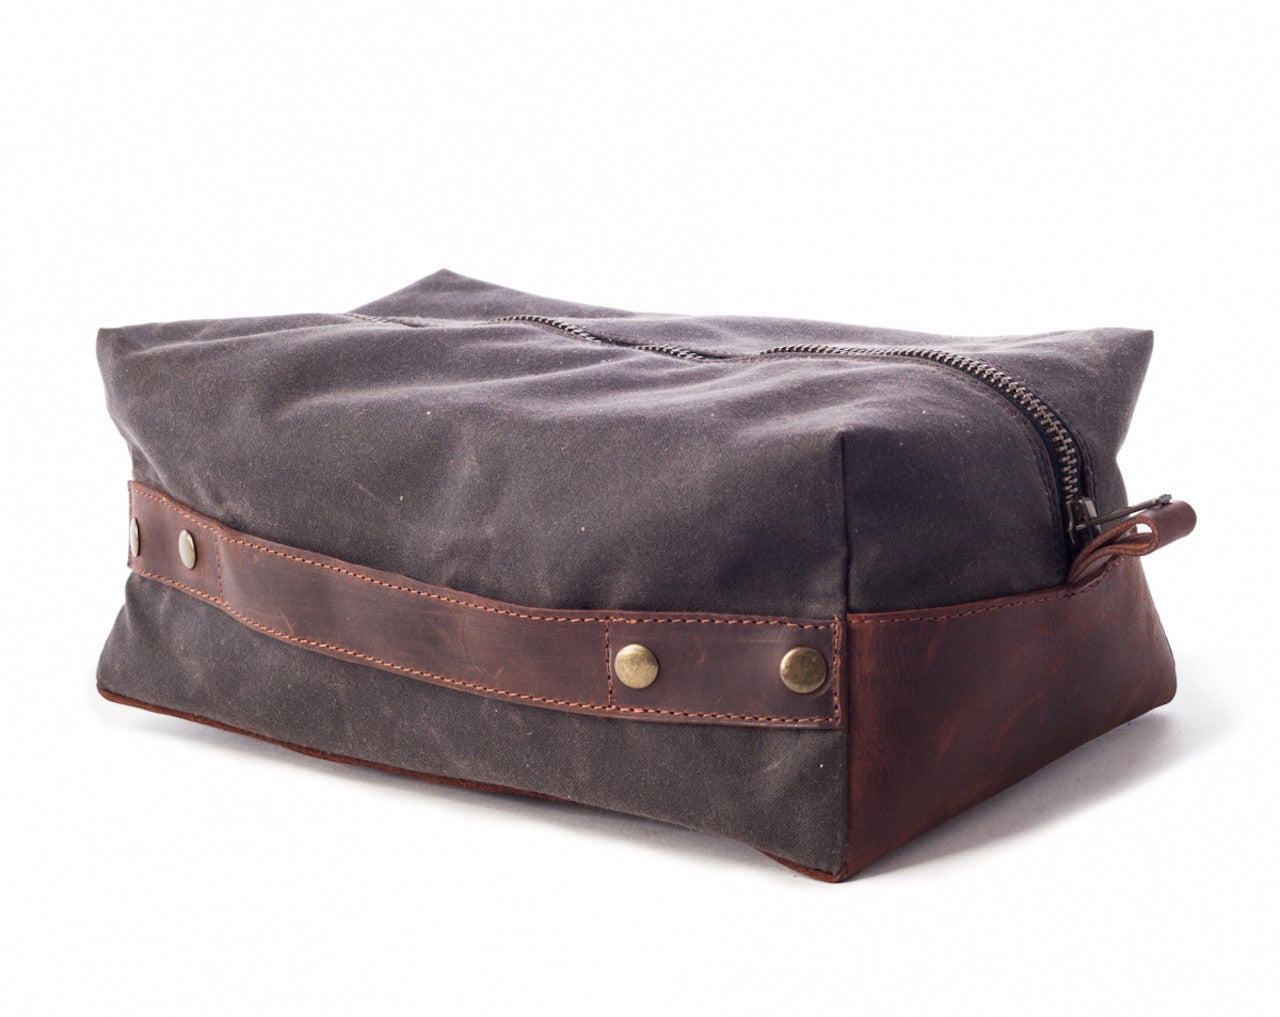 264ae25ac848 Men s Waxed Canvas Leather Dopp Kit - Gray Canvas with Brown Leather by  Tram 21 on